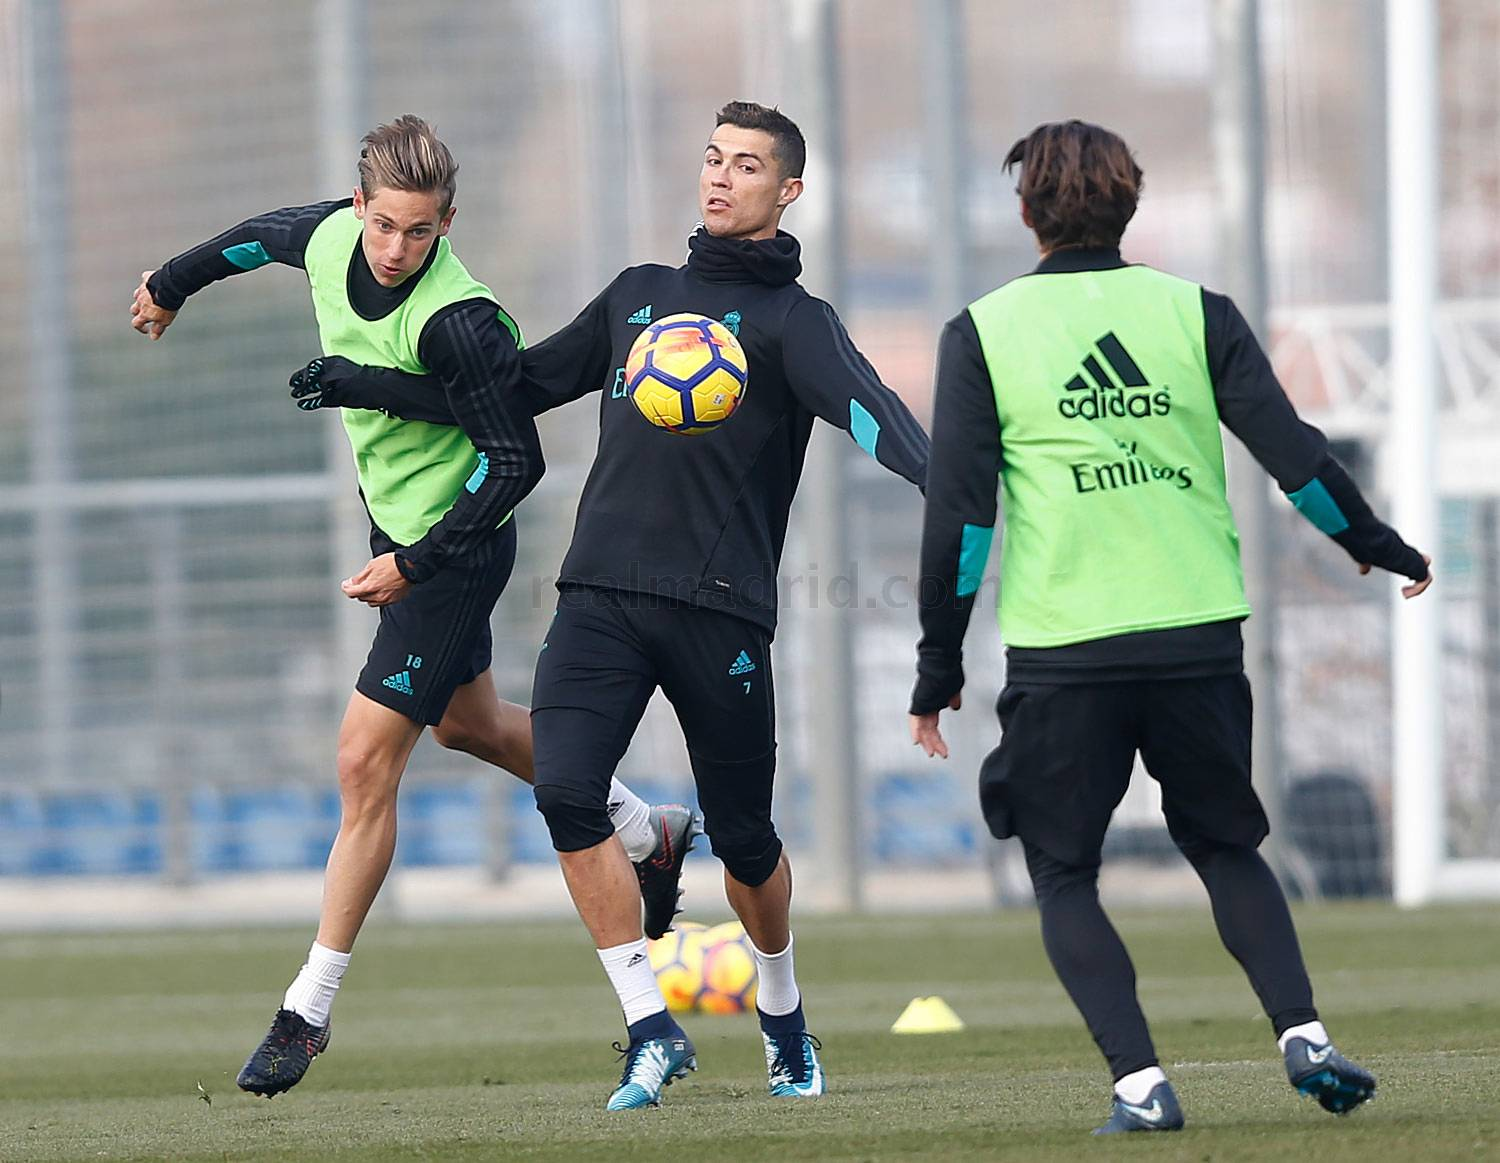 Real Madrid - Entrenamiento del Real Madrid - 08-12-2017